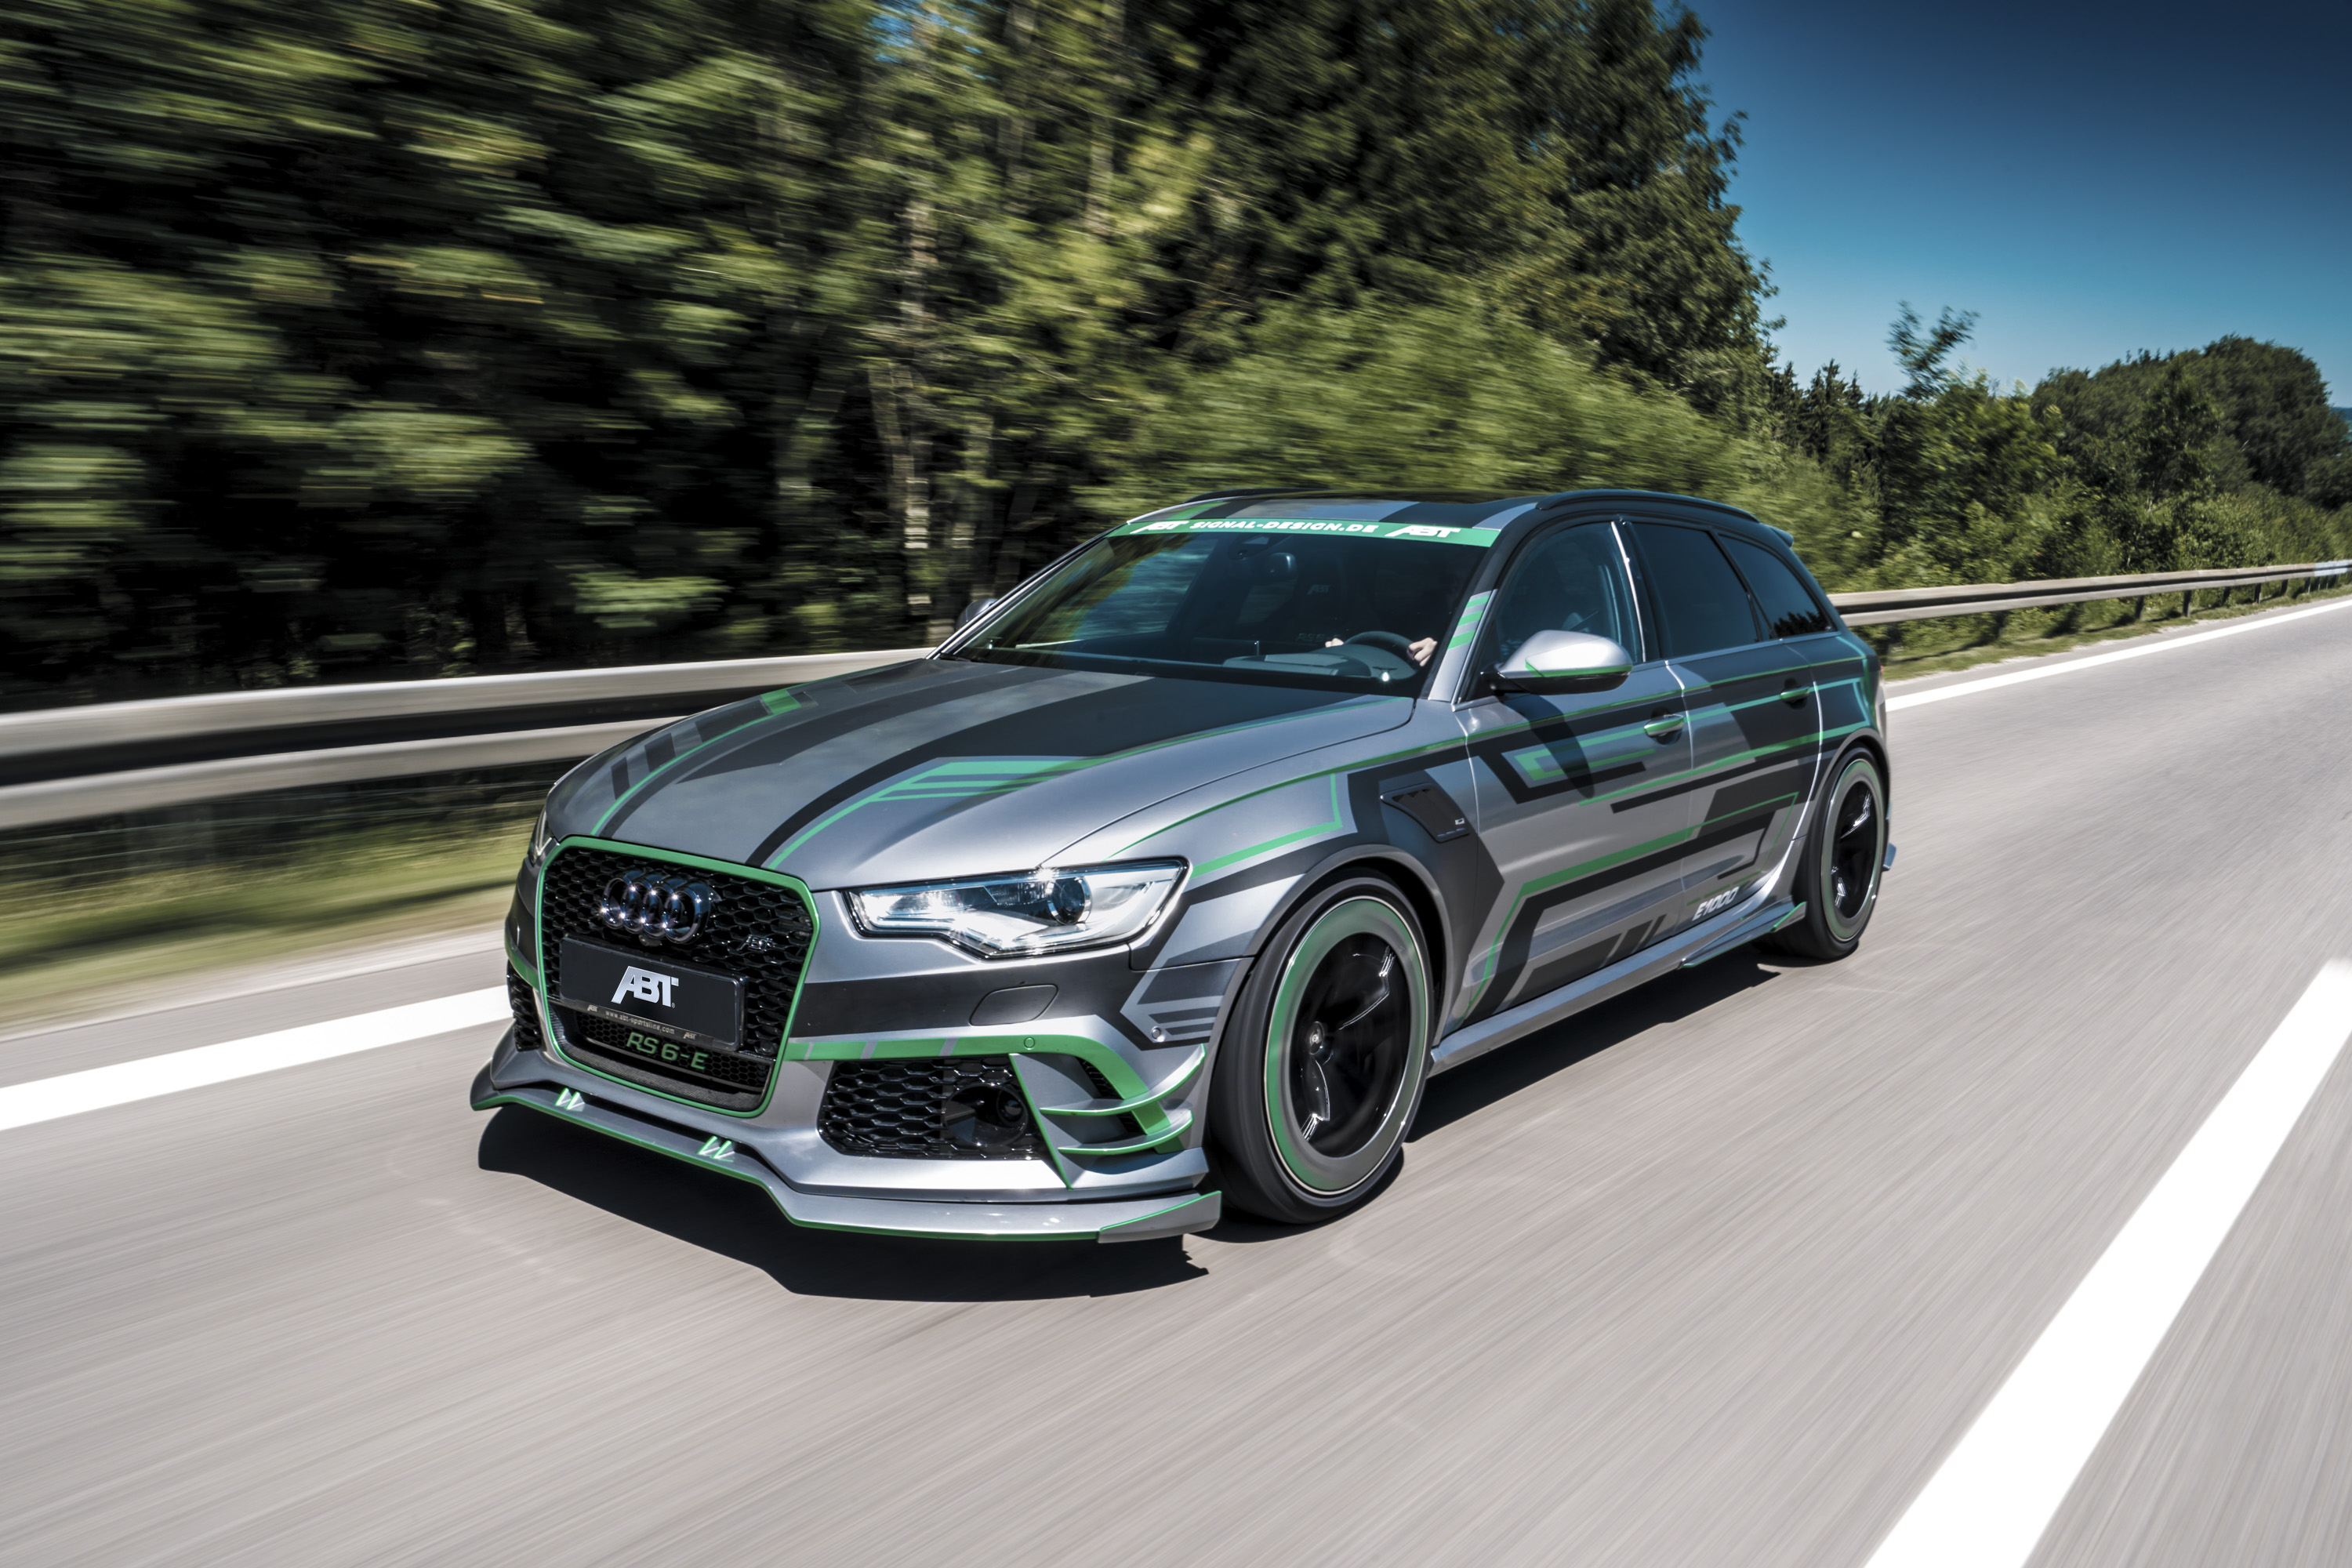 Audi RSE Hybrid Concept By ABT Top Speed - Audi rs6 2018